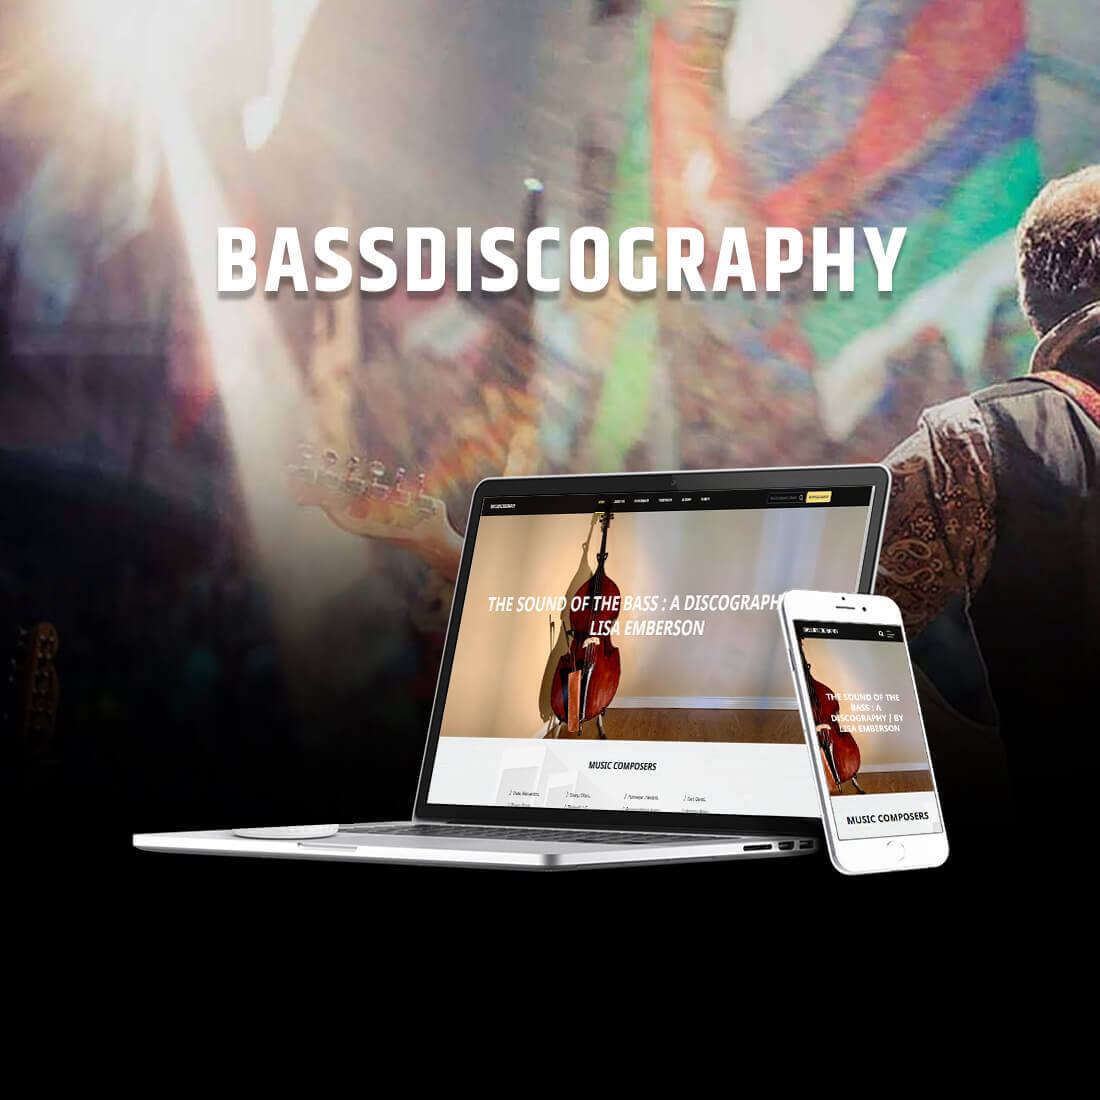 Bass discography